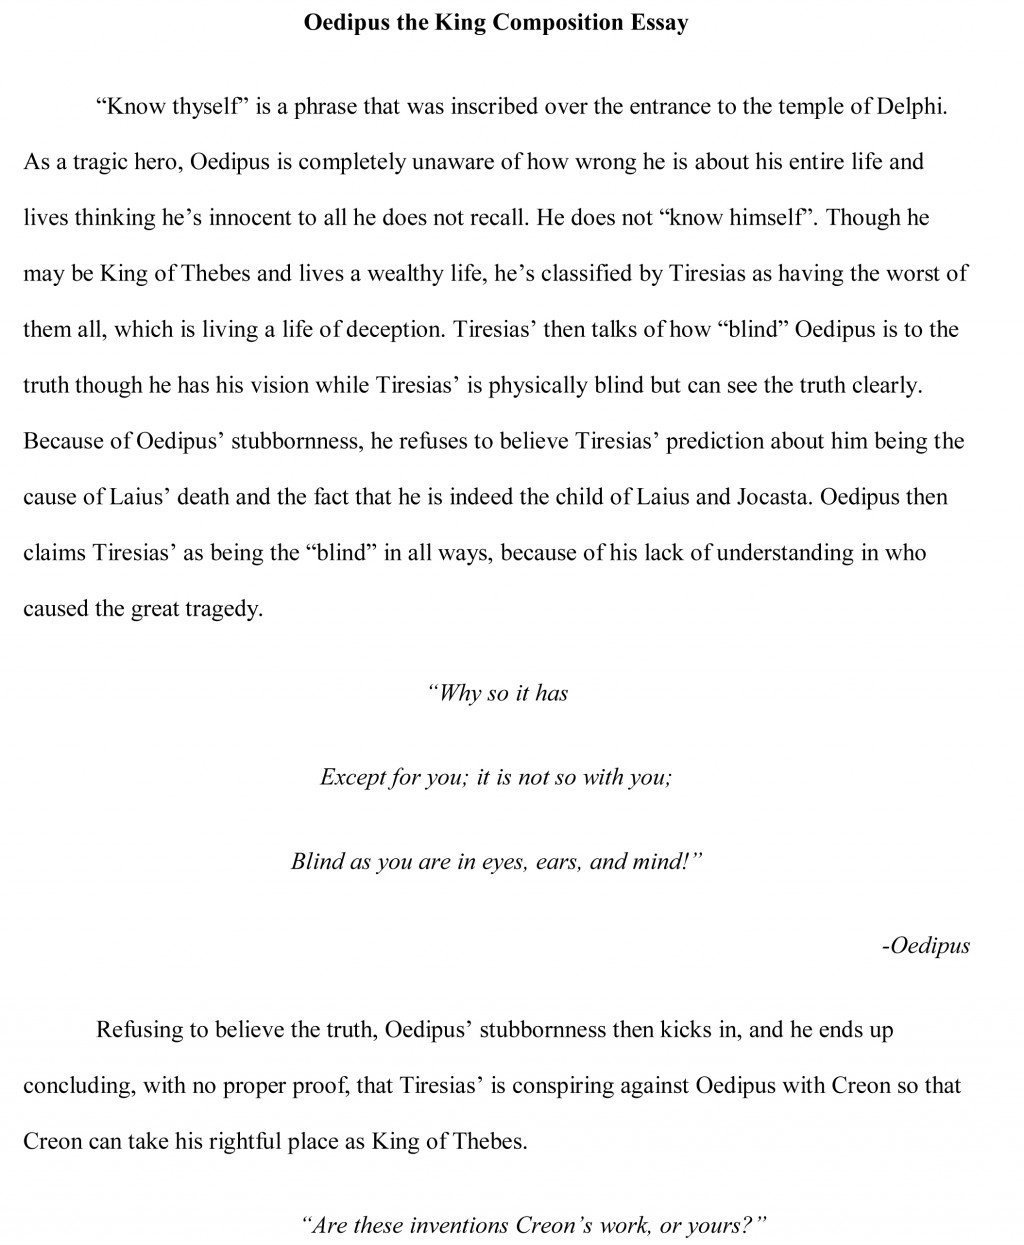 011 Oedipus Essay Free Sample Good Hooks For Essayss Excellent Essays Examples Persuasive Narrative Large